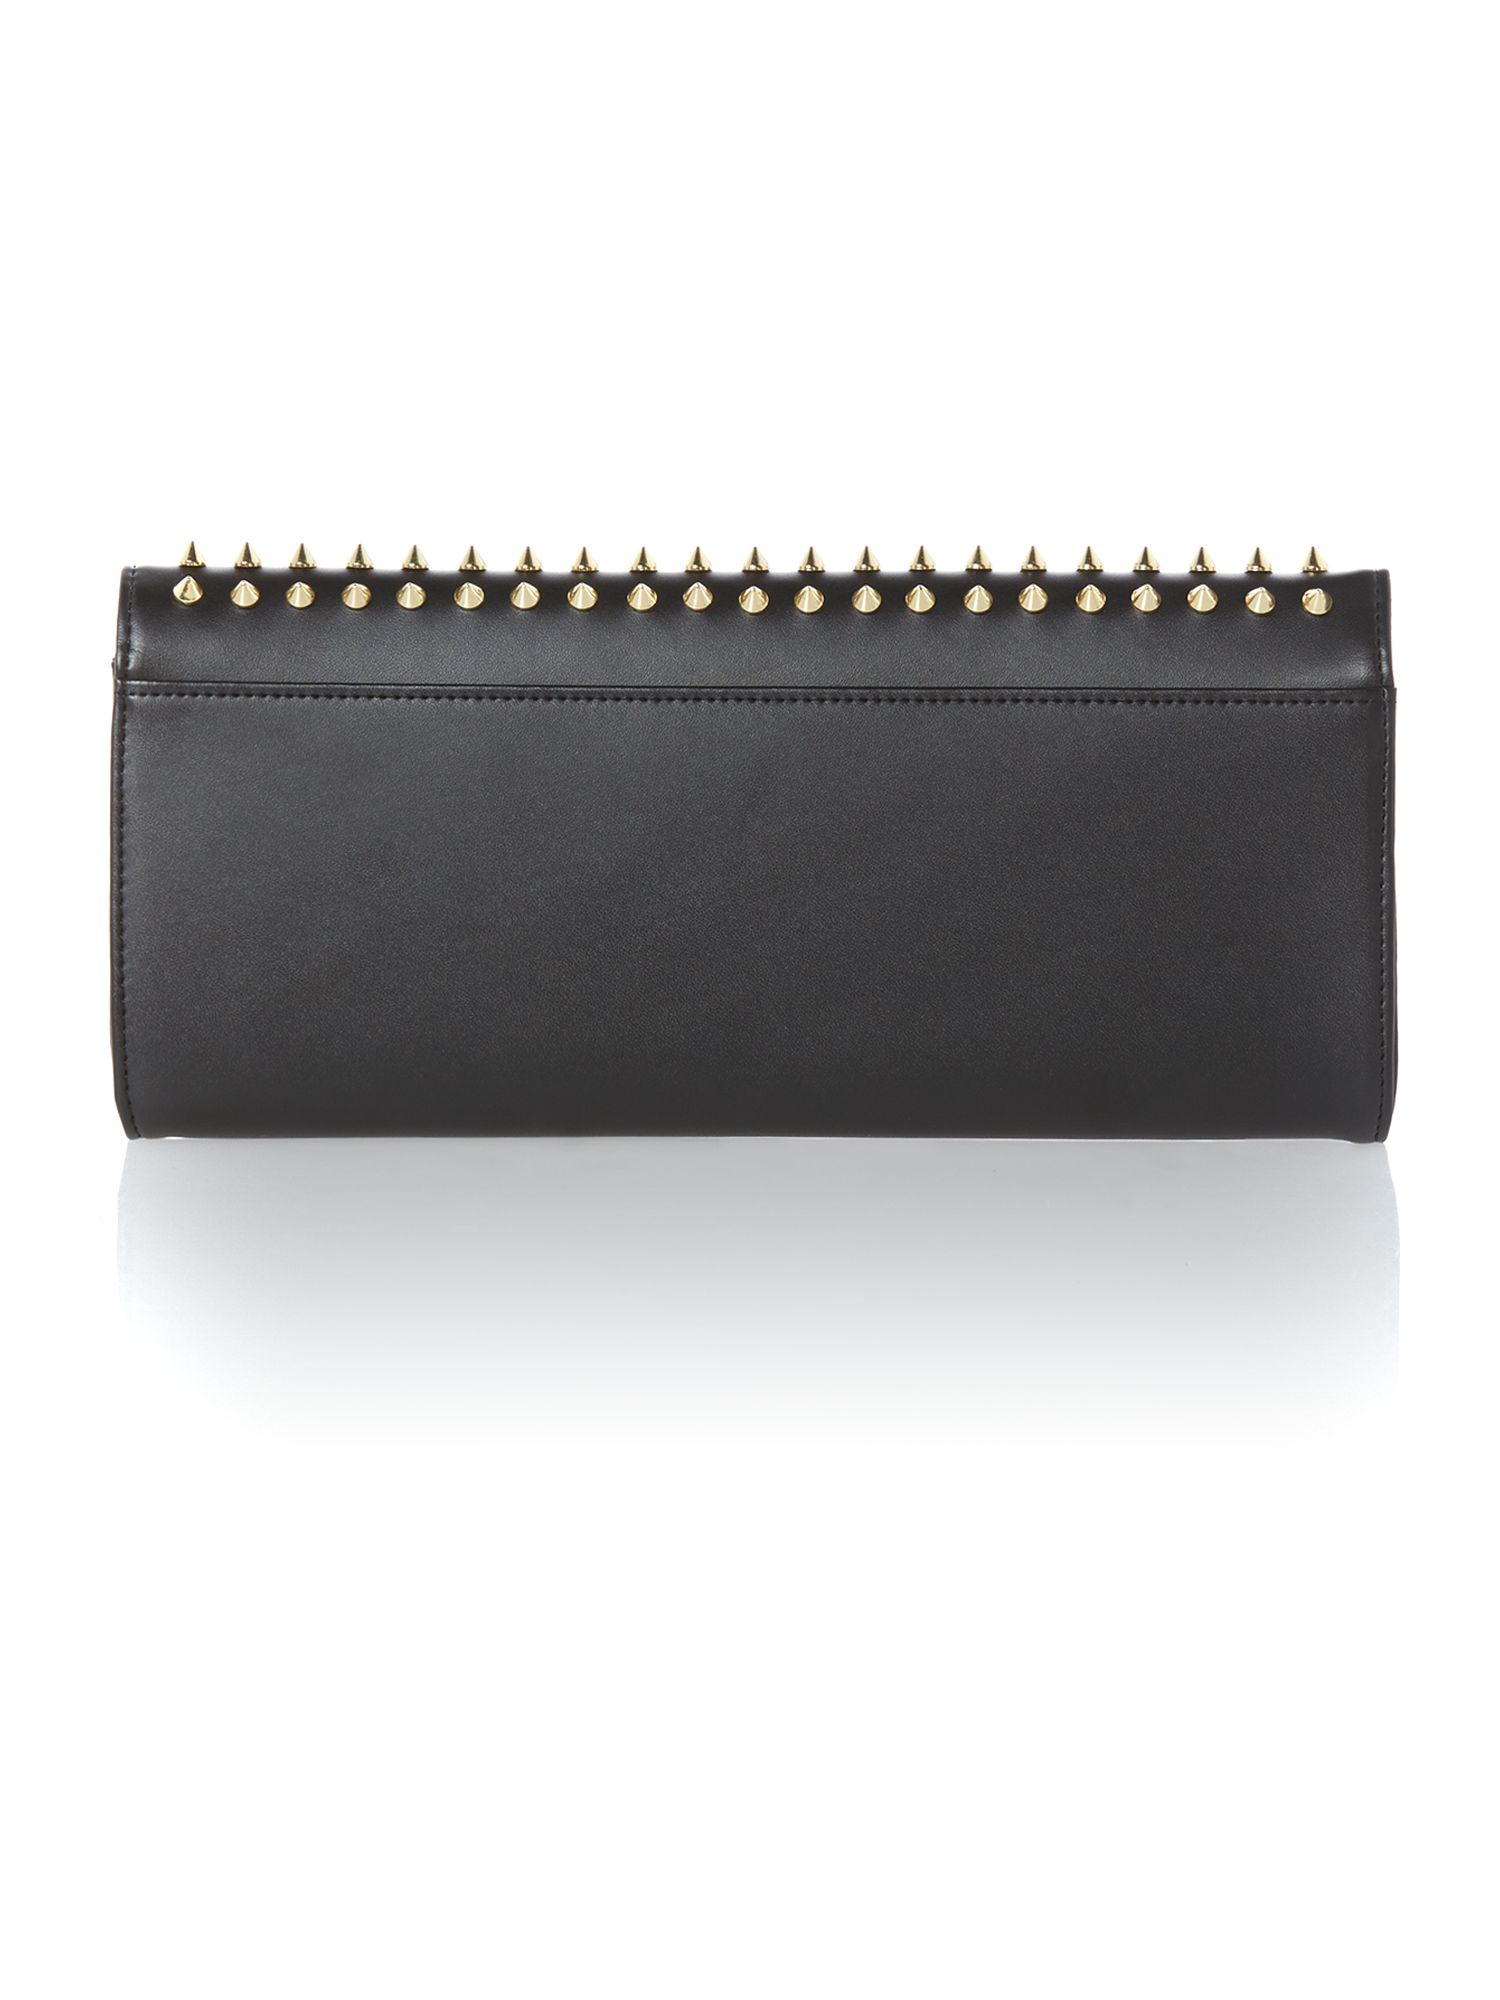 Black large studded clutch bag